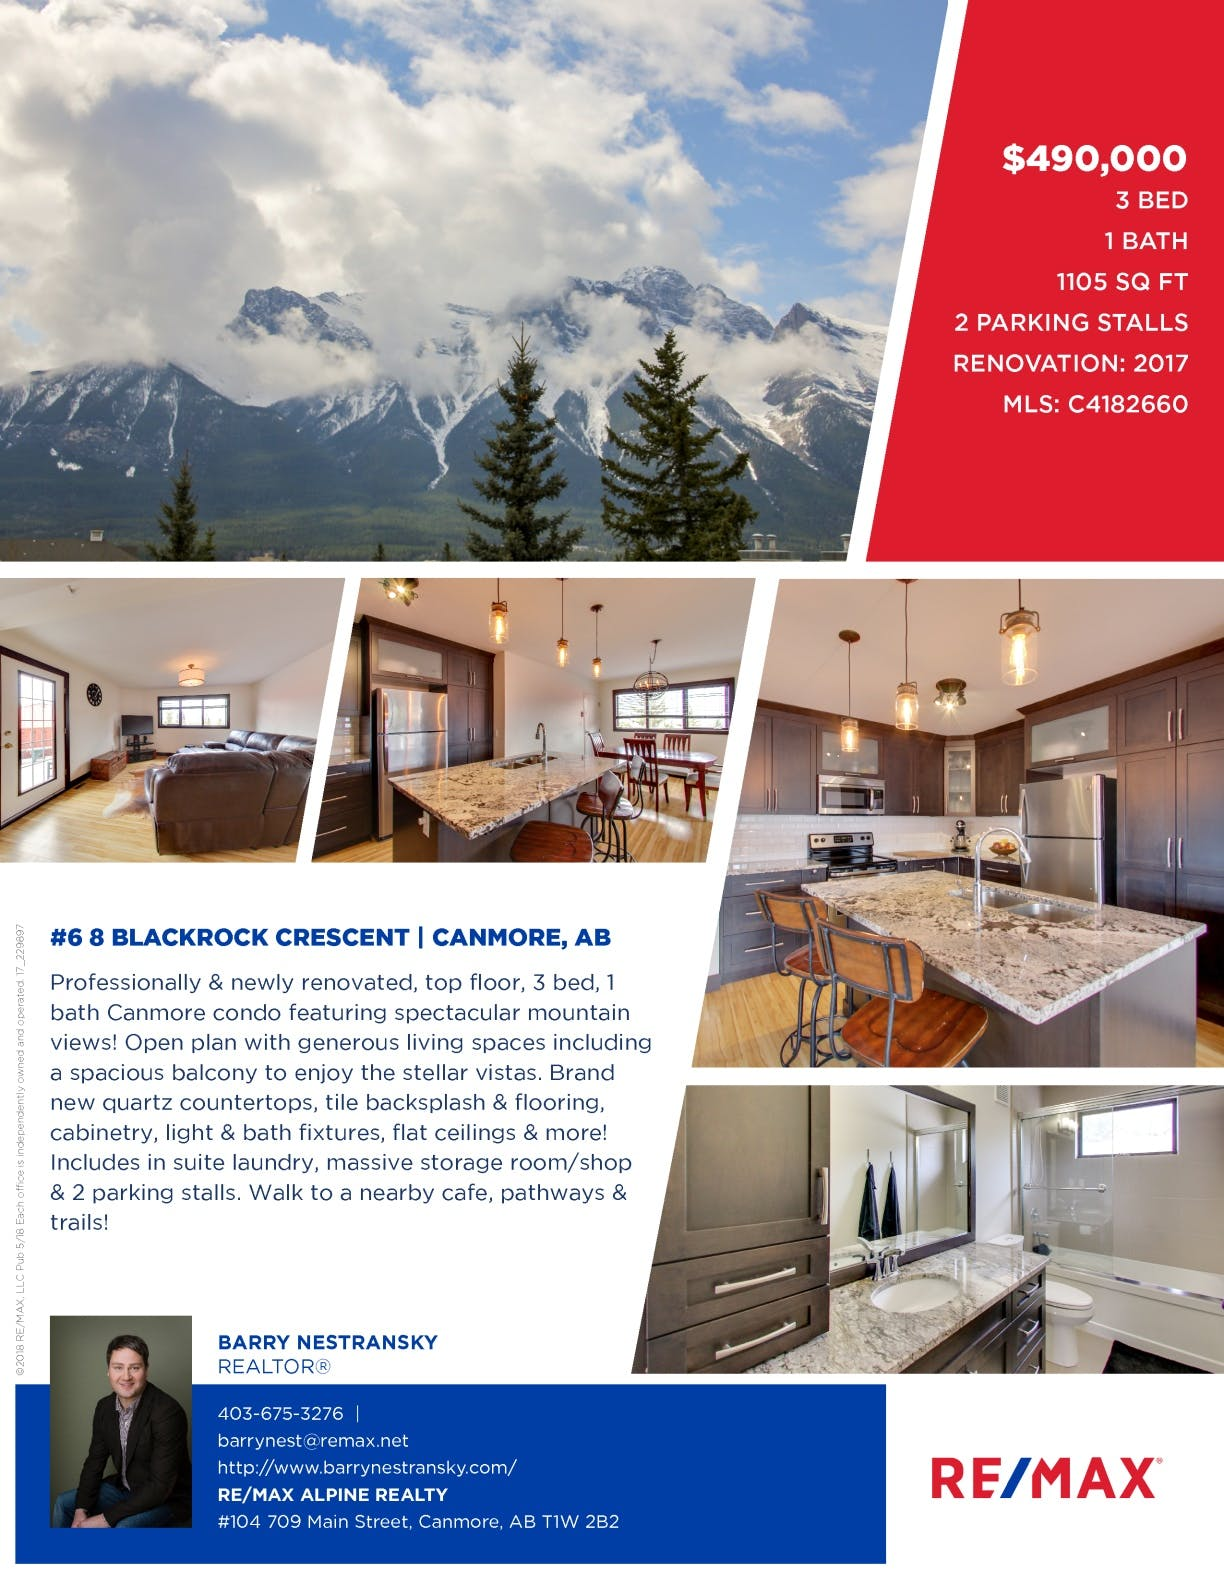 #6 8 Blackrock Crescent, Canmore